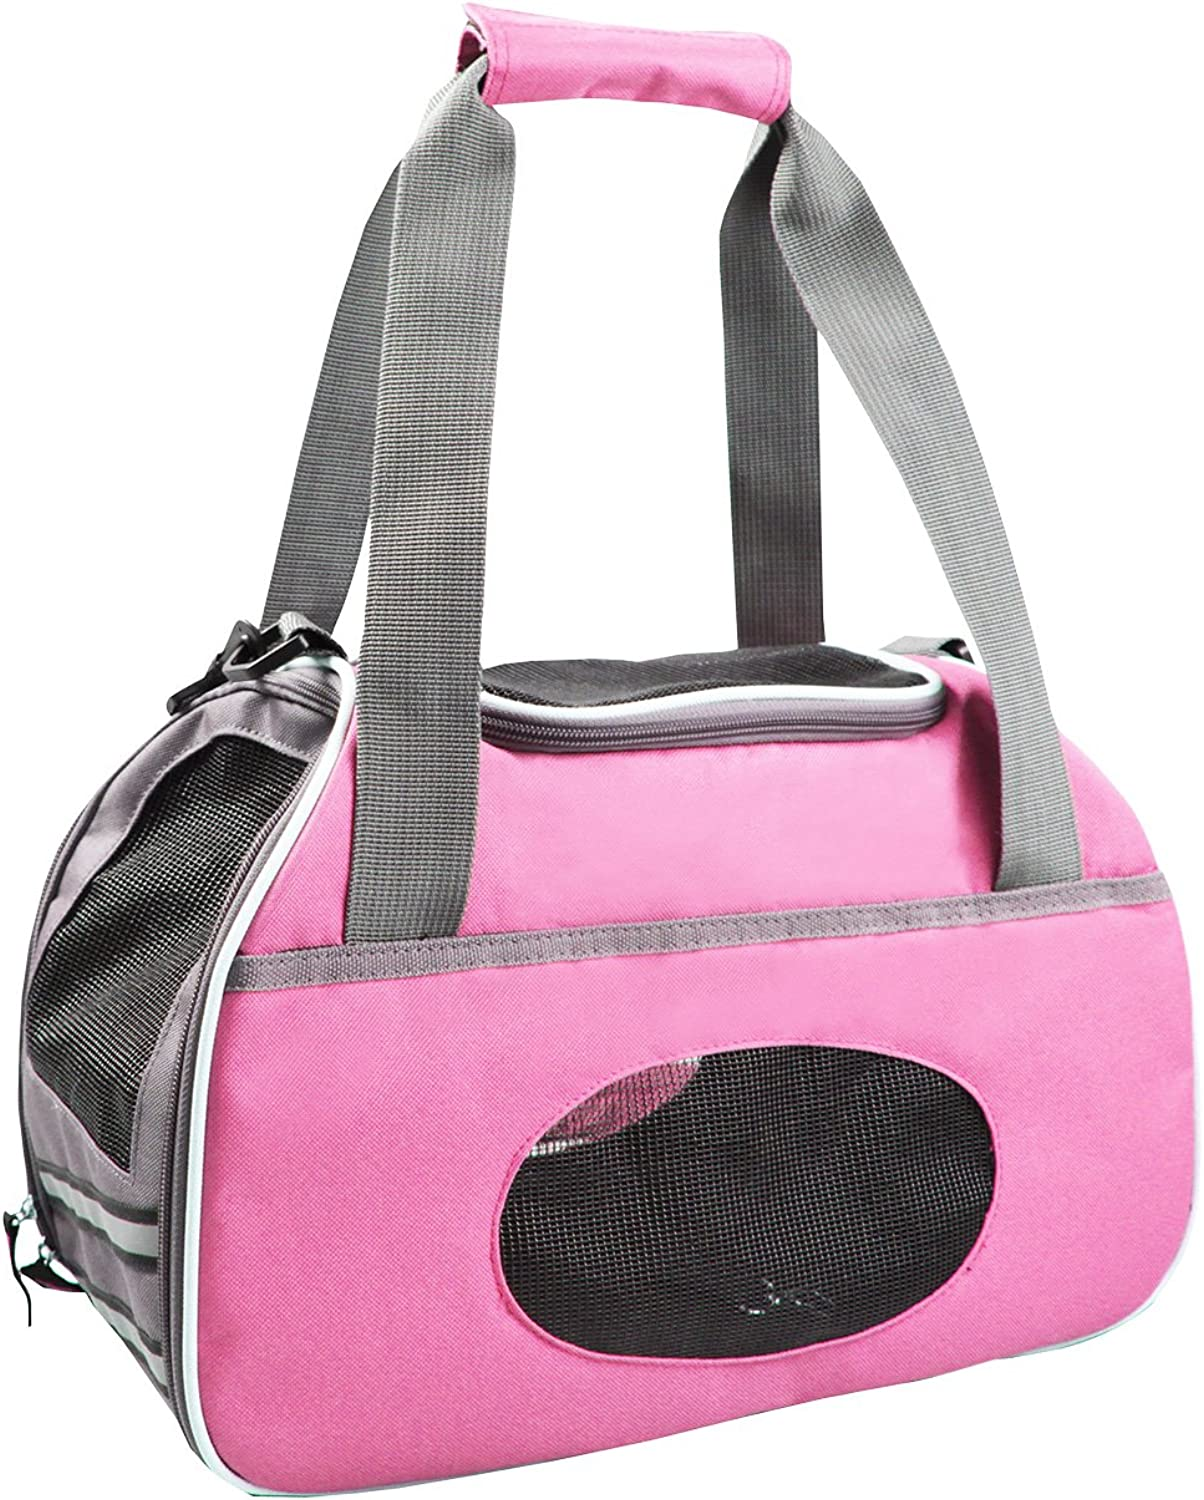 Animal Treasures 31119 Sport Pet Carrier, Pink